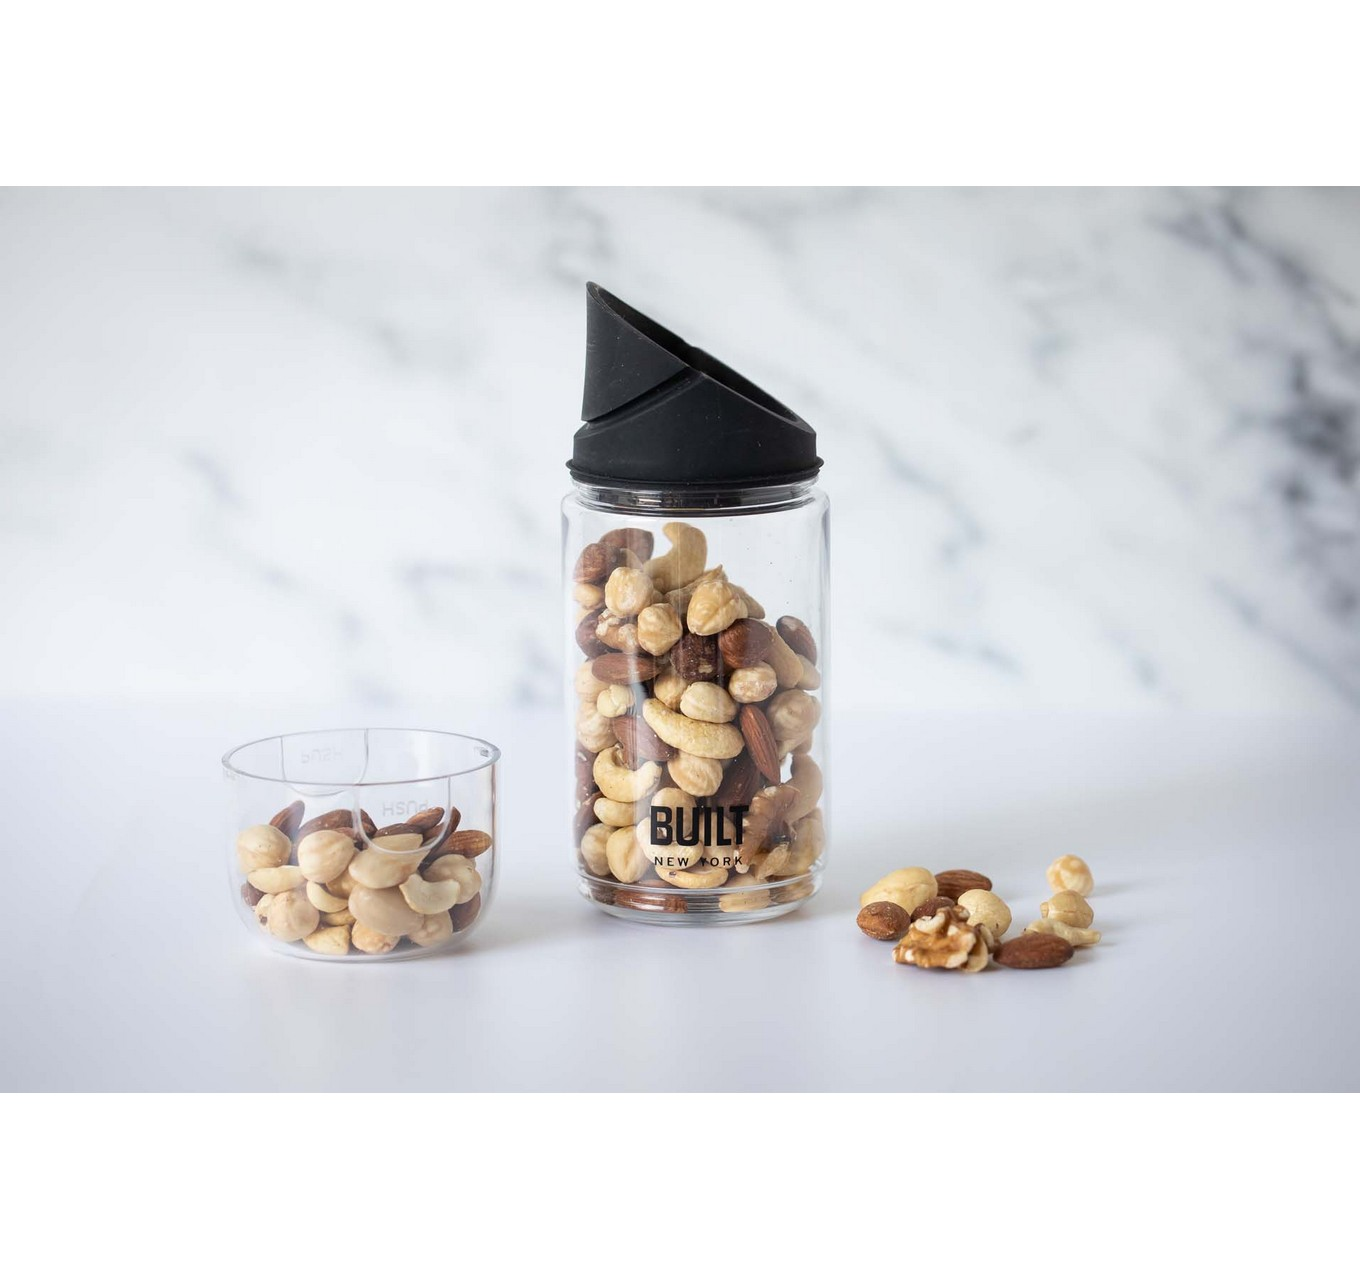 Built Snack Pot with Lid 400ml